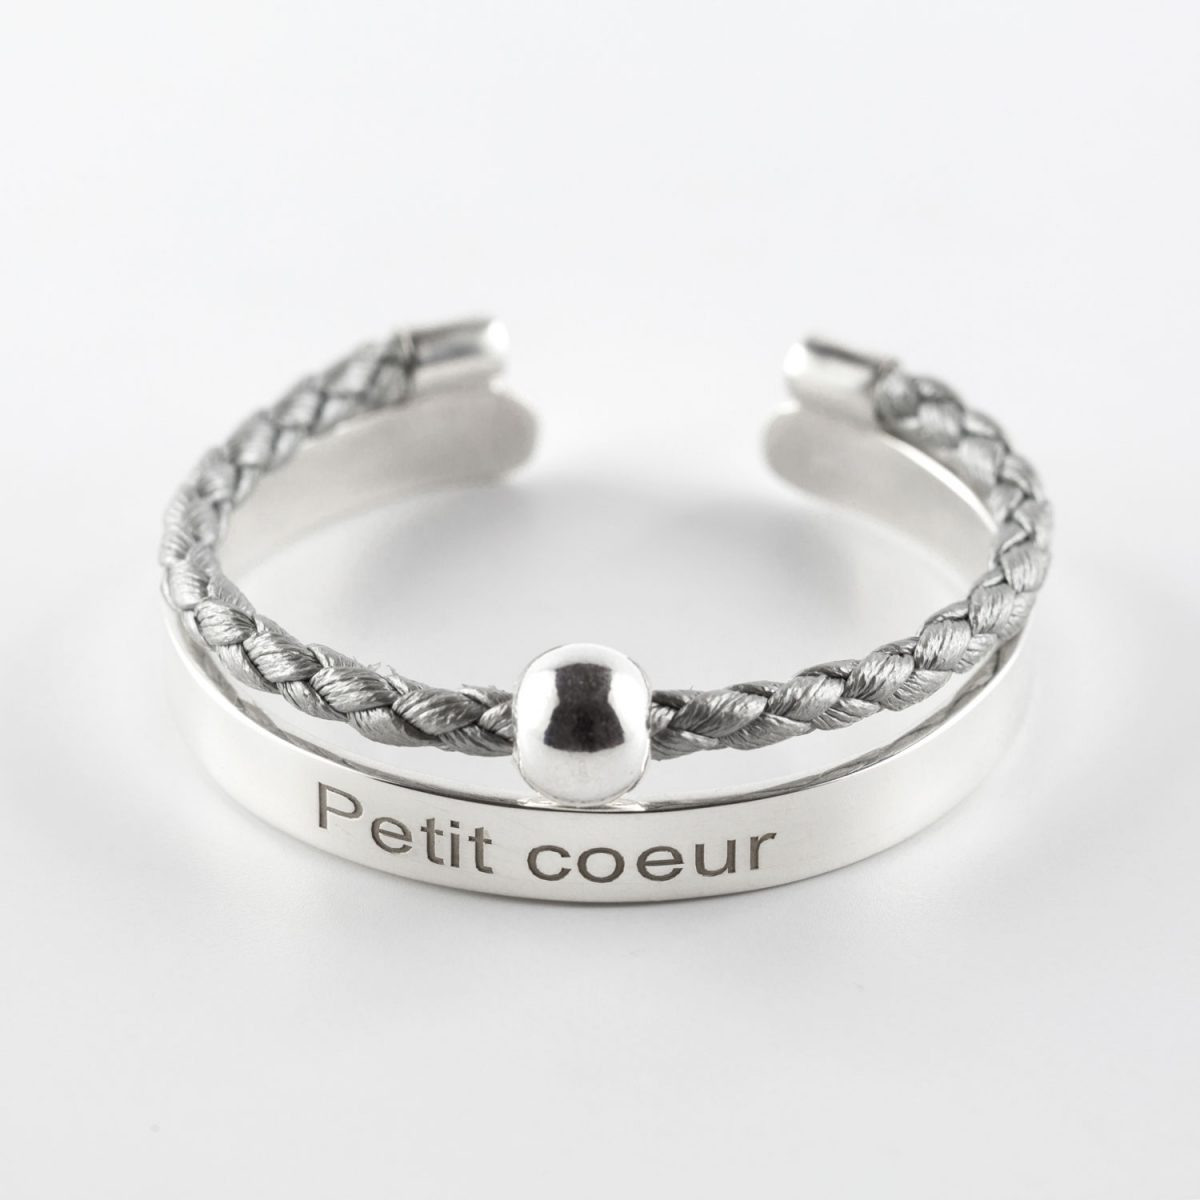 "Child's solid silver bangle with inscription ""Petit Coeur"" and silvery grey leather cord"